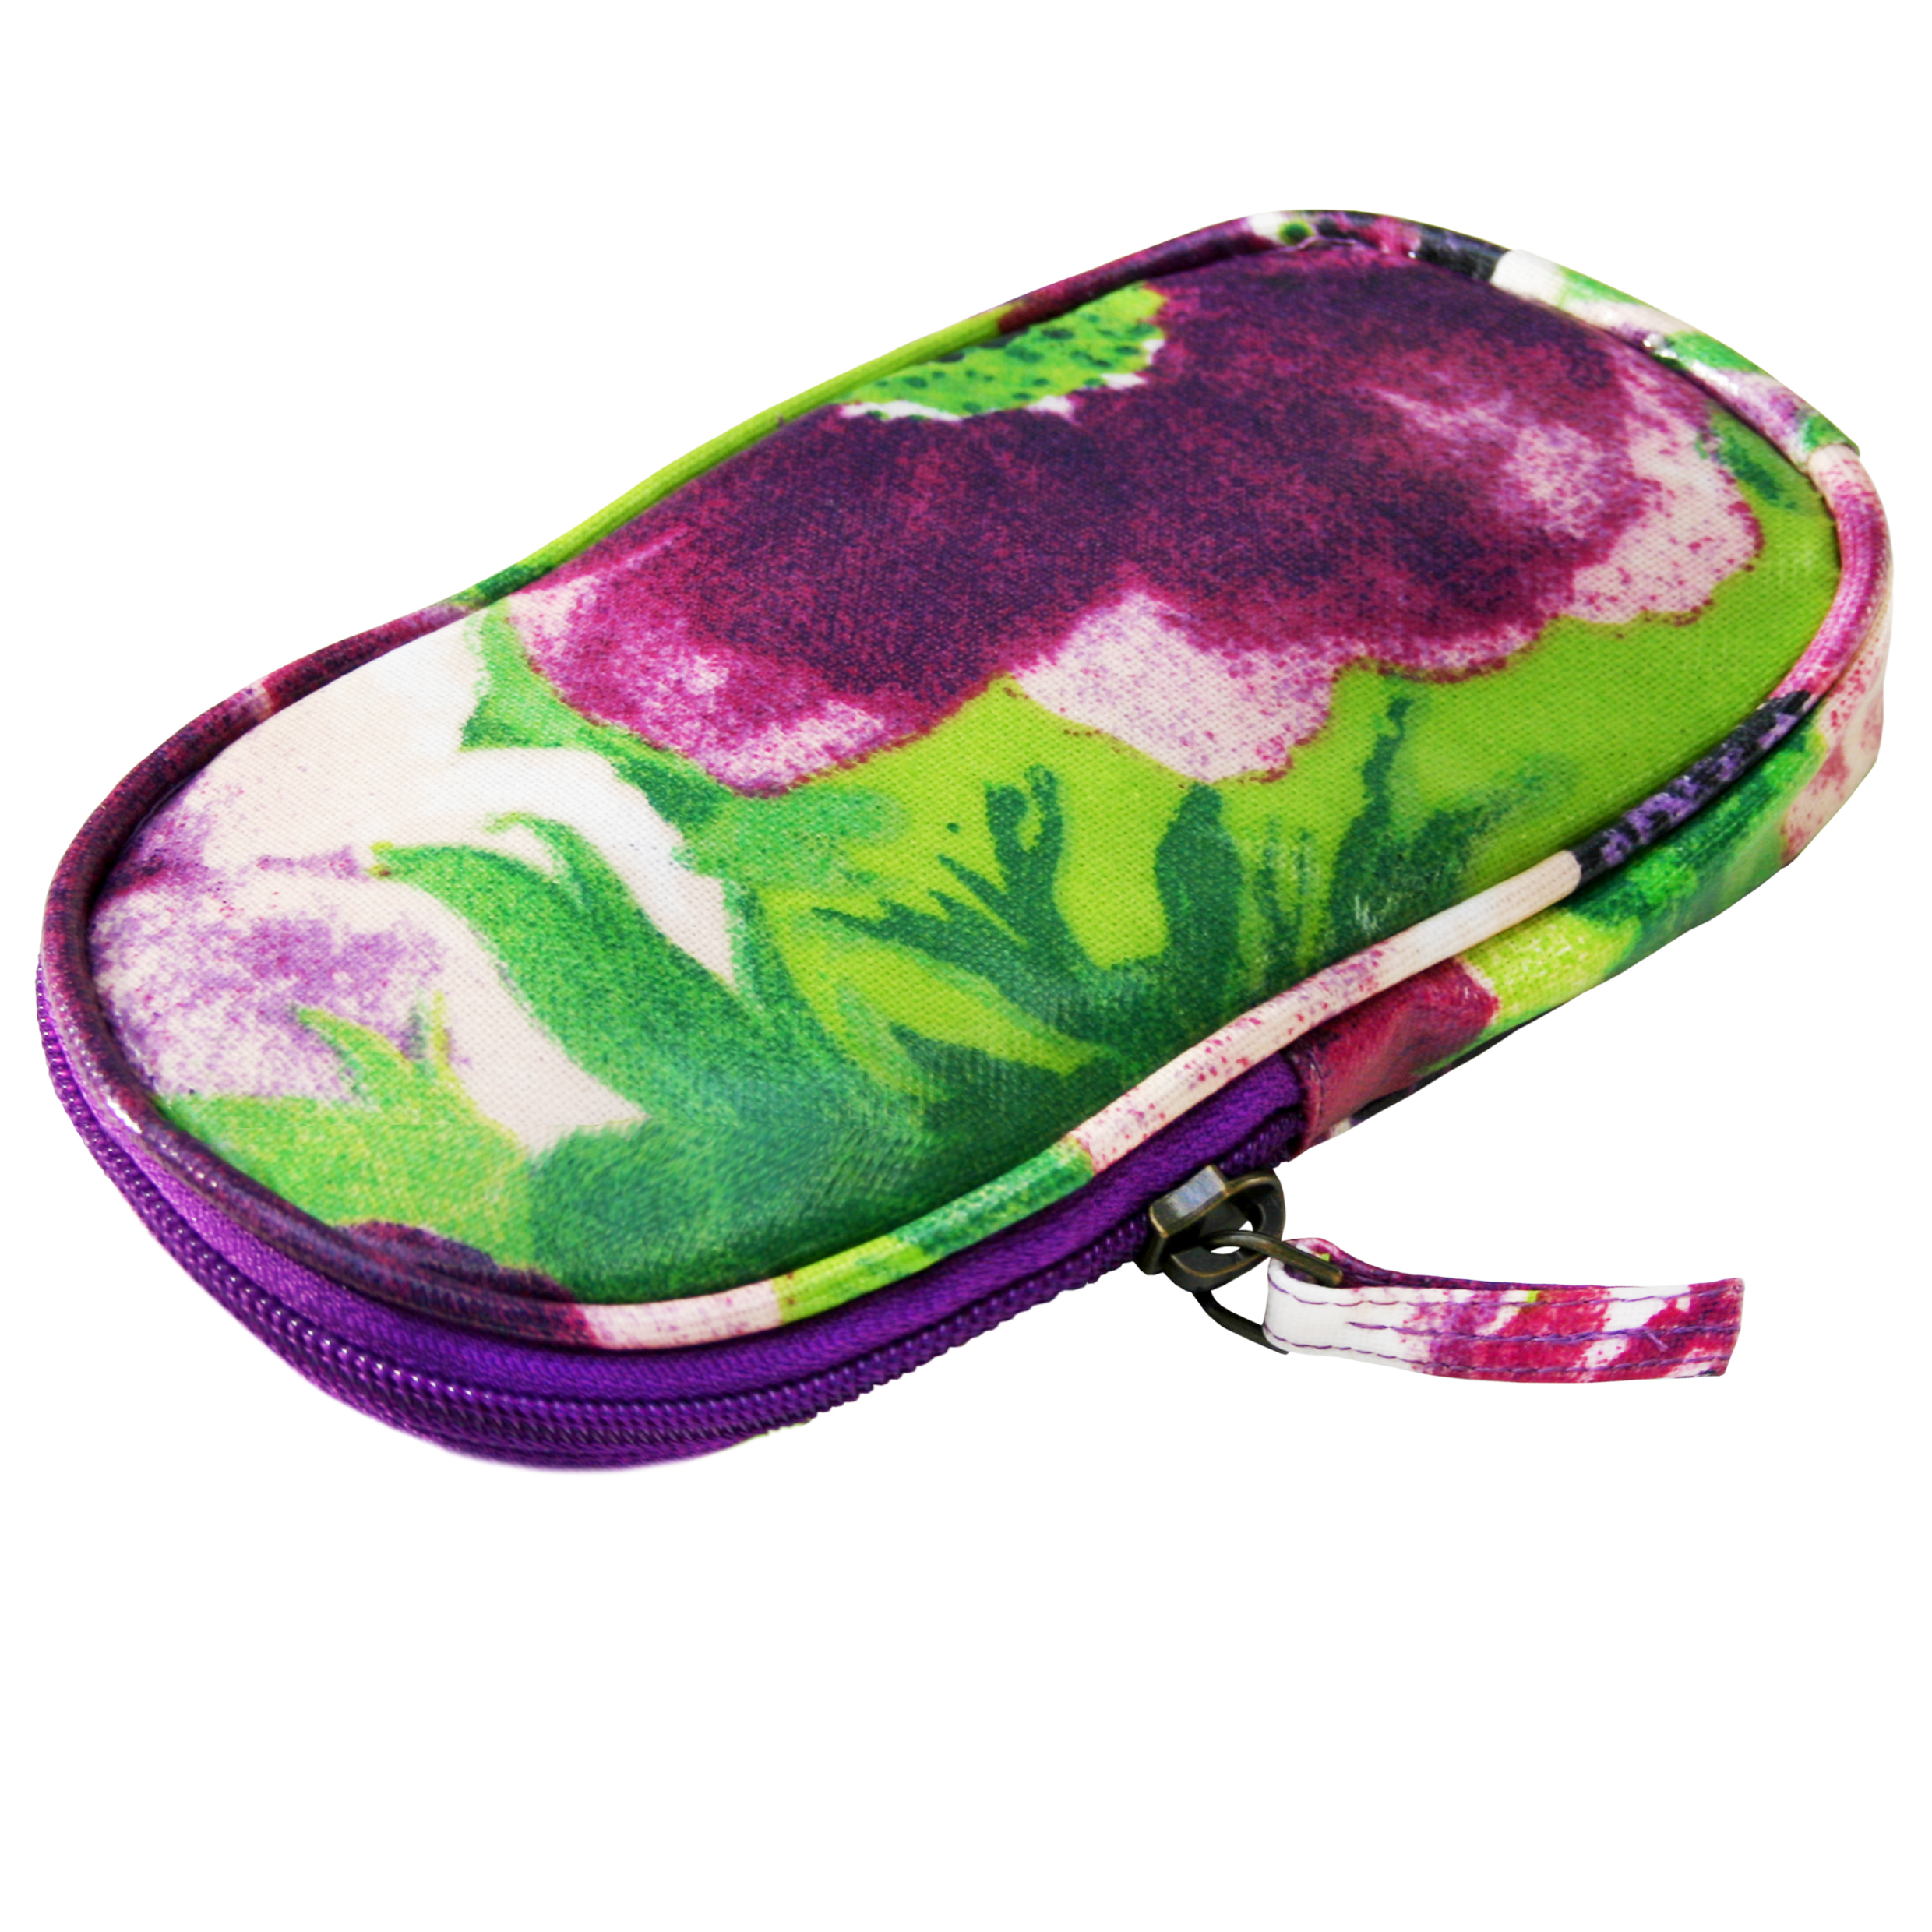 Ragged Rose Secky Purple Spectacle Case